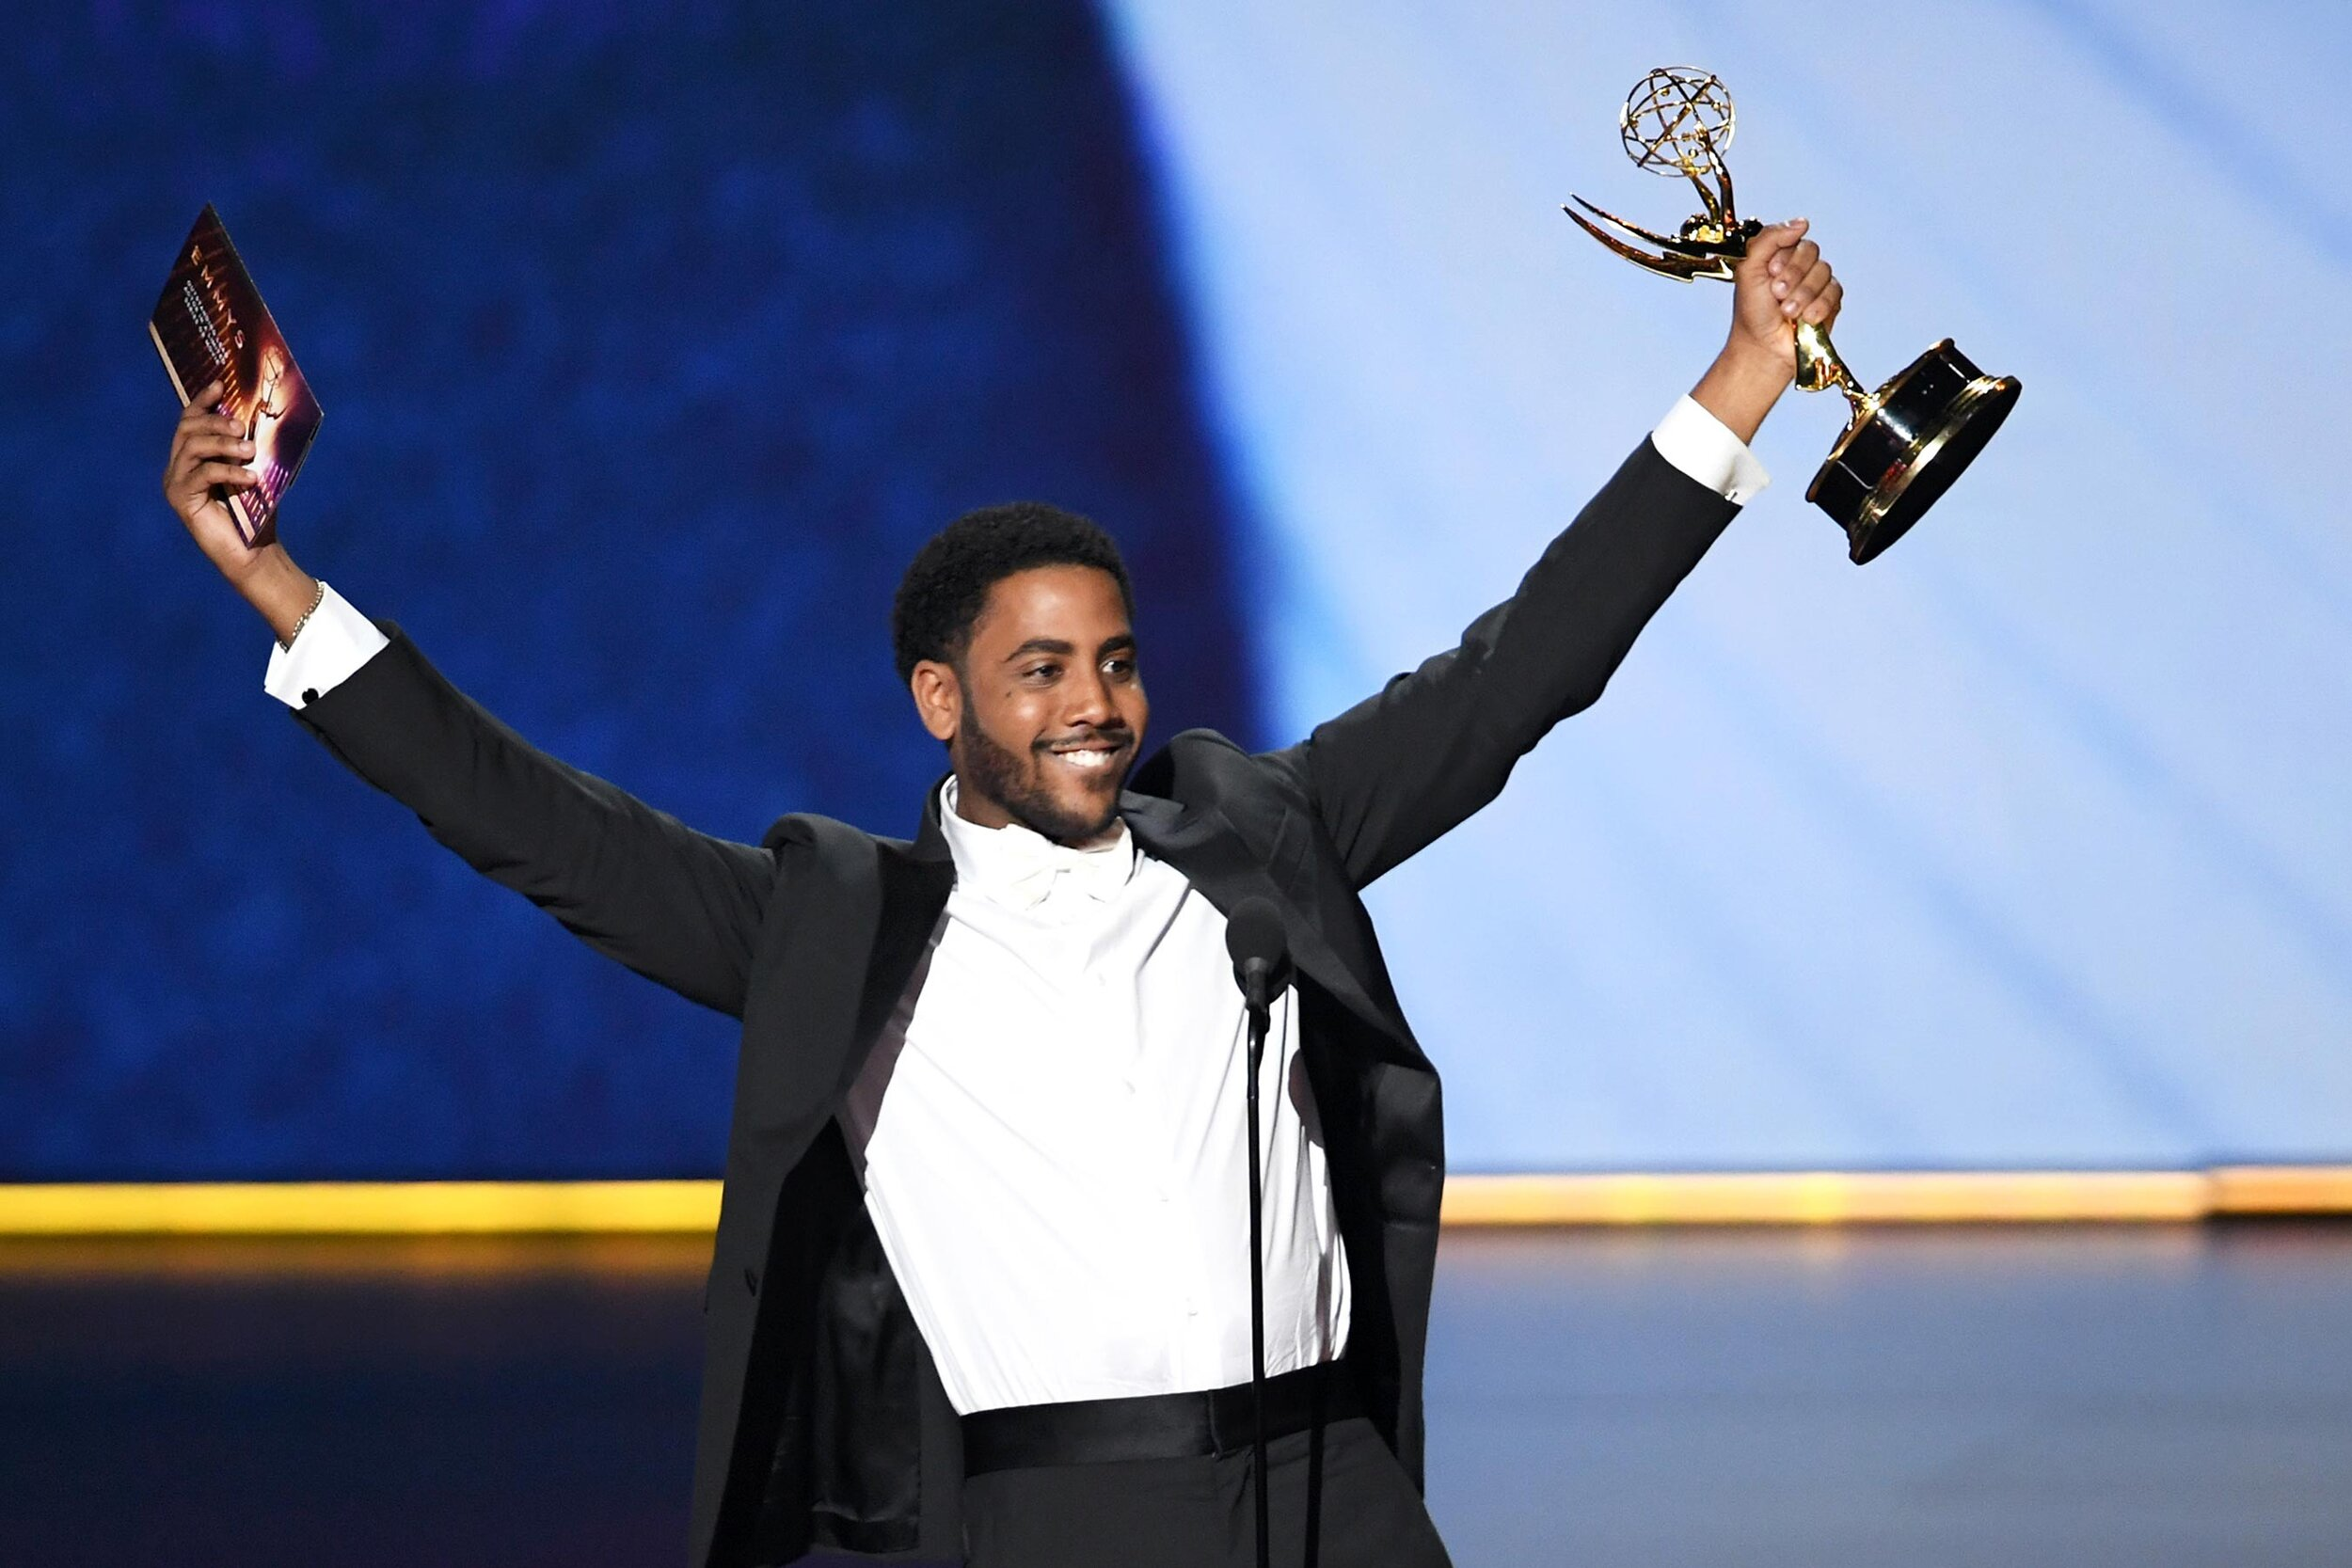 Chernobyl  may have taken the top prizes in series, directing and writing, but Jharell Jerome snagged the lead acting award, as his portrayal of Korey Wise in  When They See Us  made him the youngest ever winner in the category